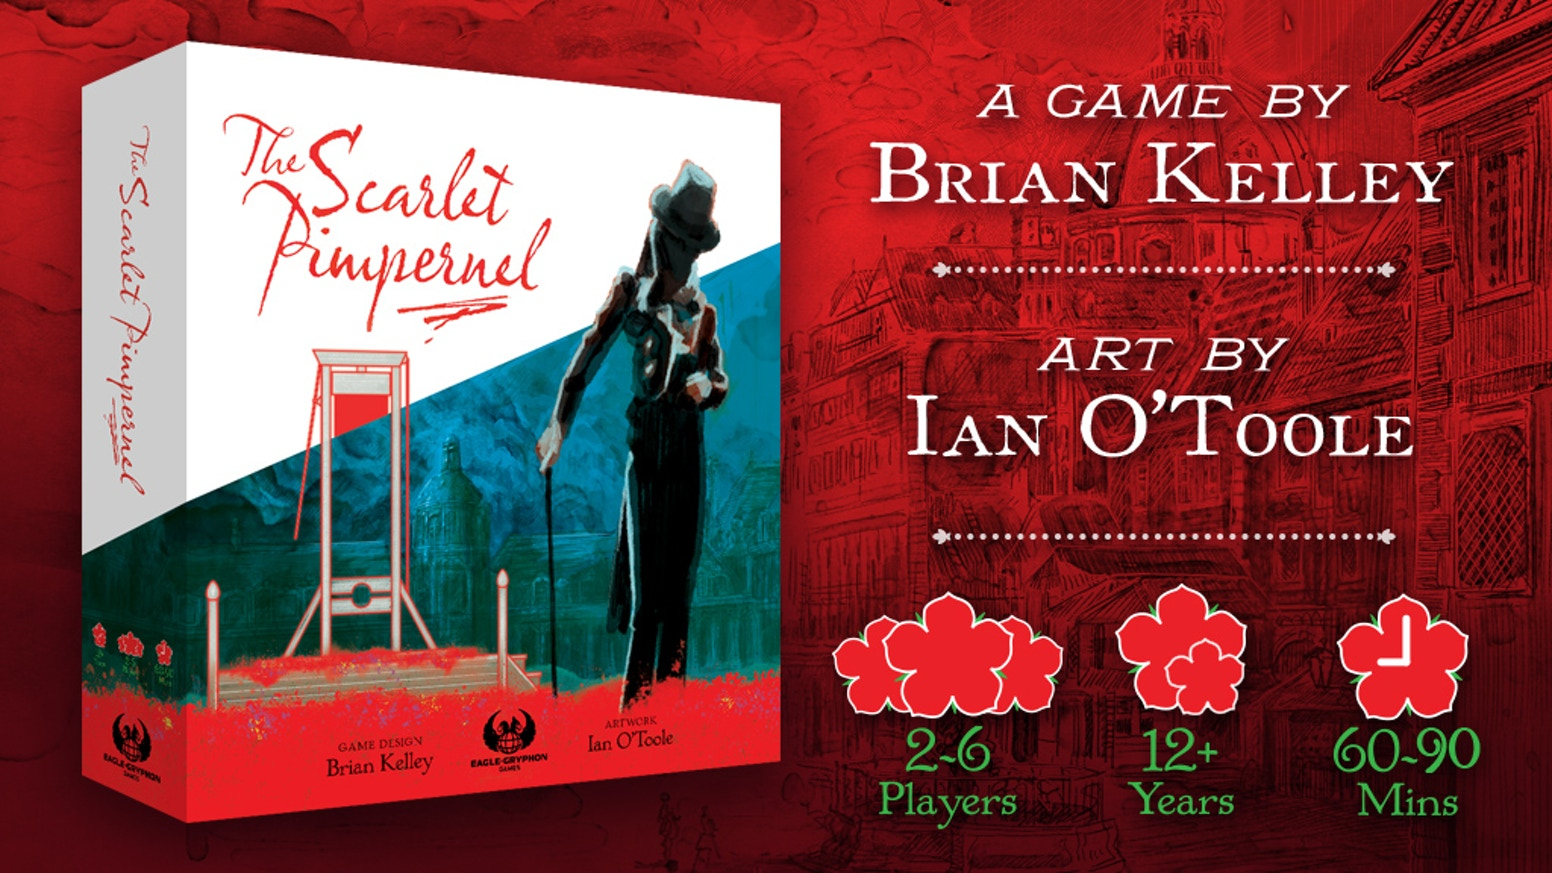 Join the Scarlet Pimpernel on his daring adventures in this beautiful new euro strategy game!